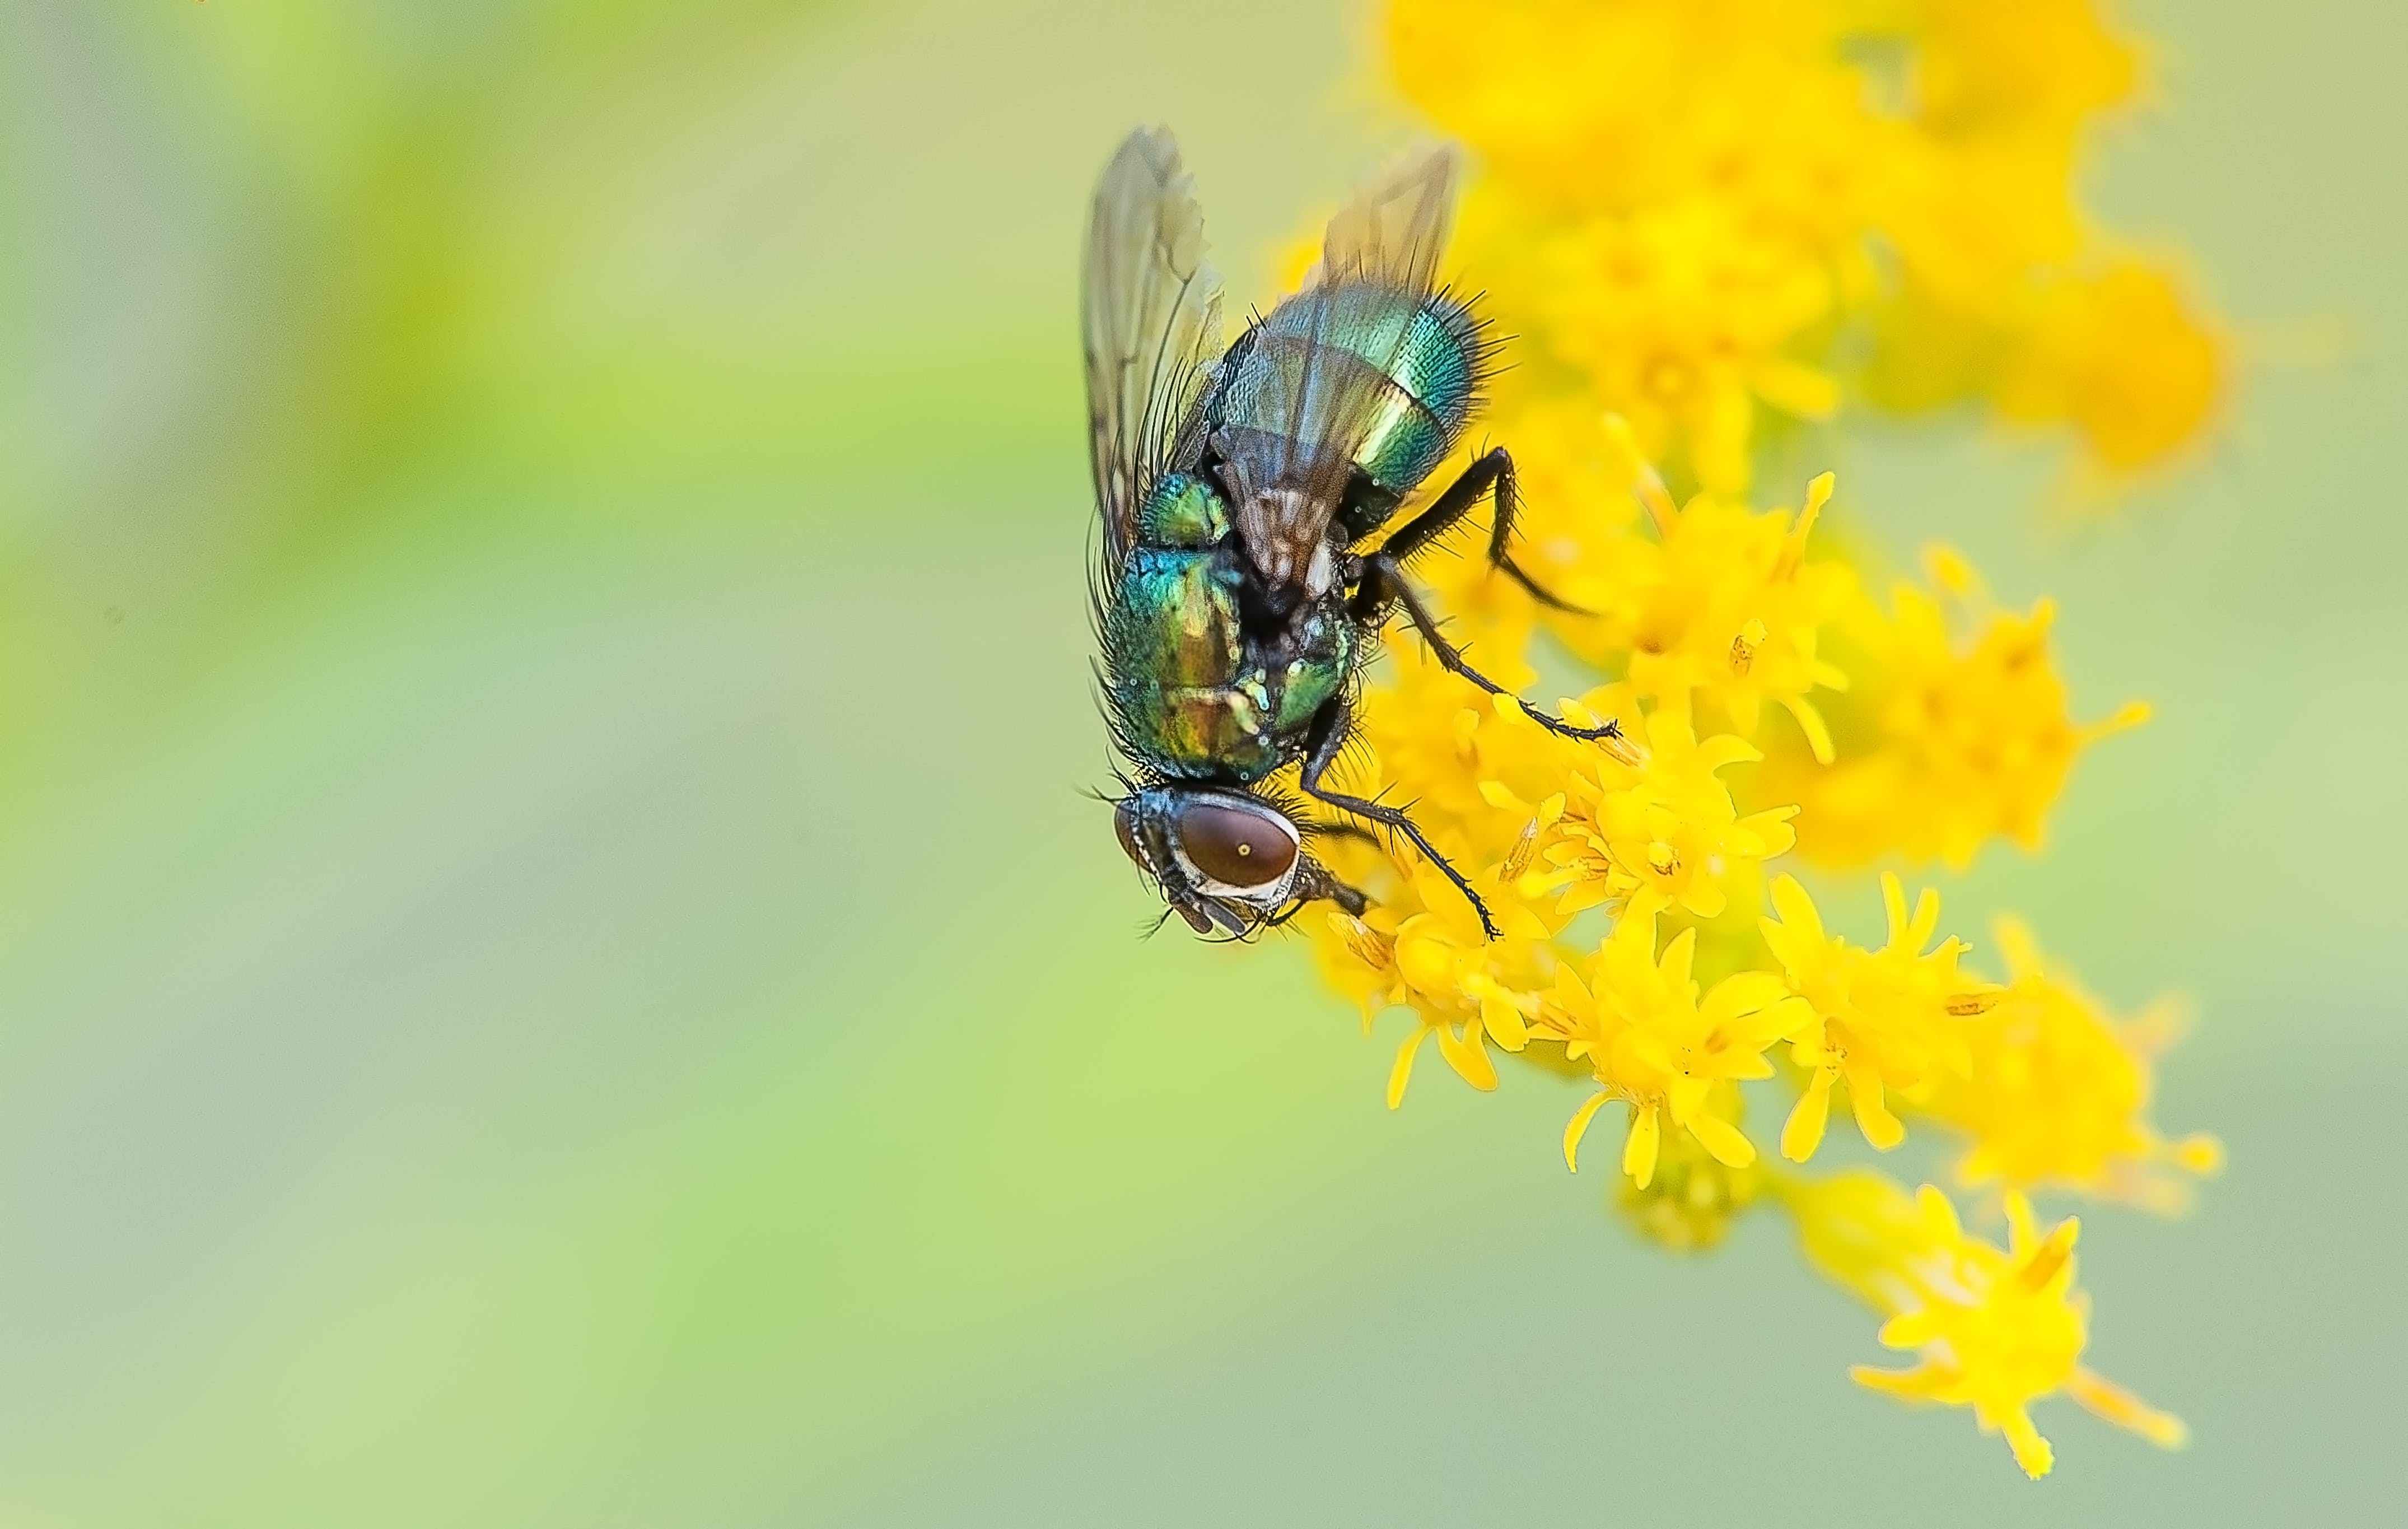 Blue Fly on Yellow Flowers